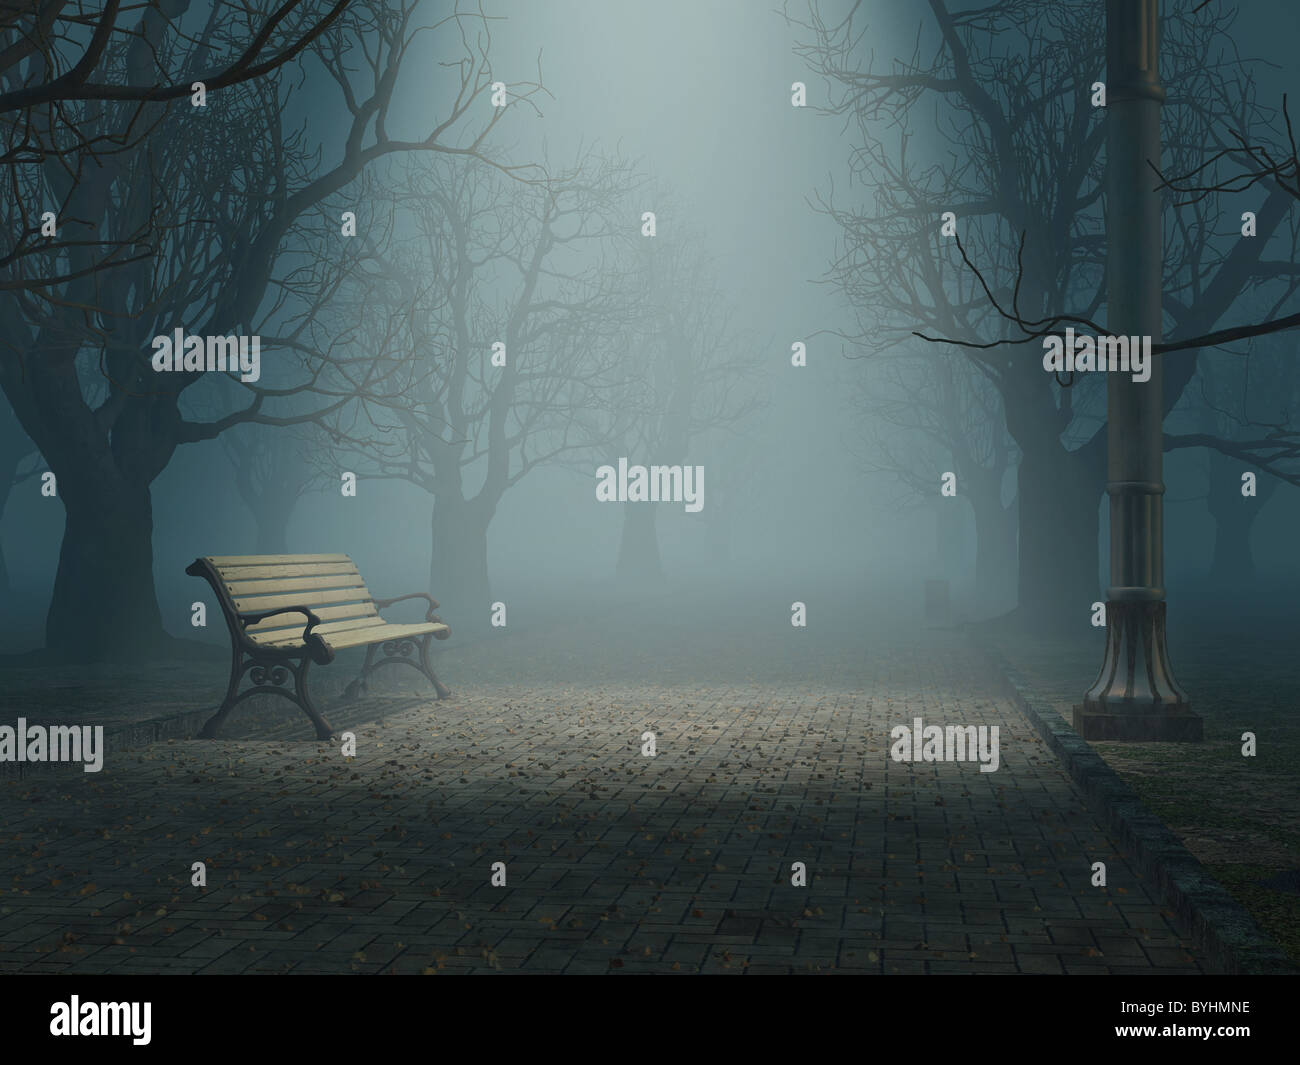 Banc de parc misty en solitaire Photo Stock